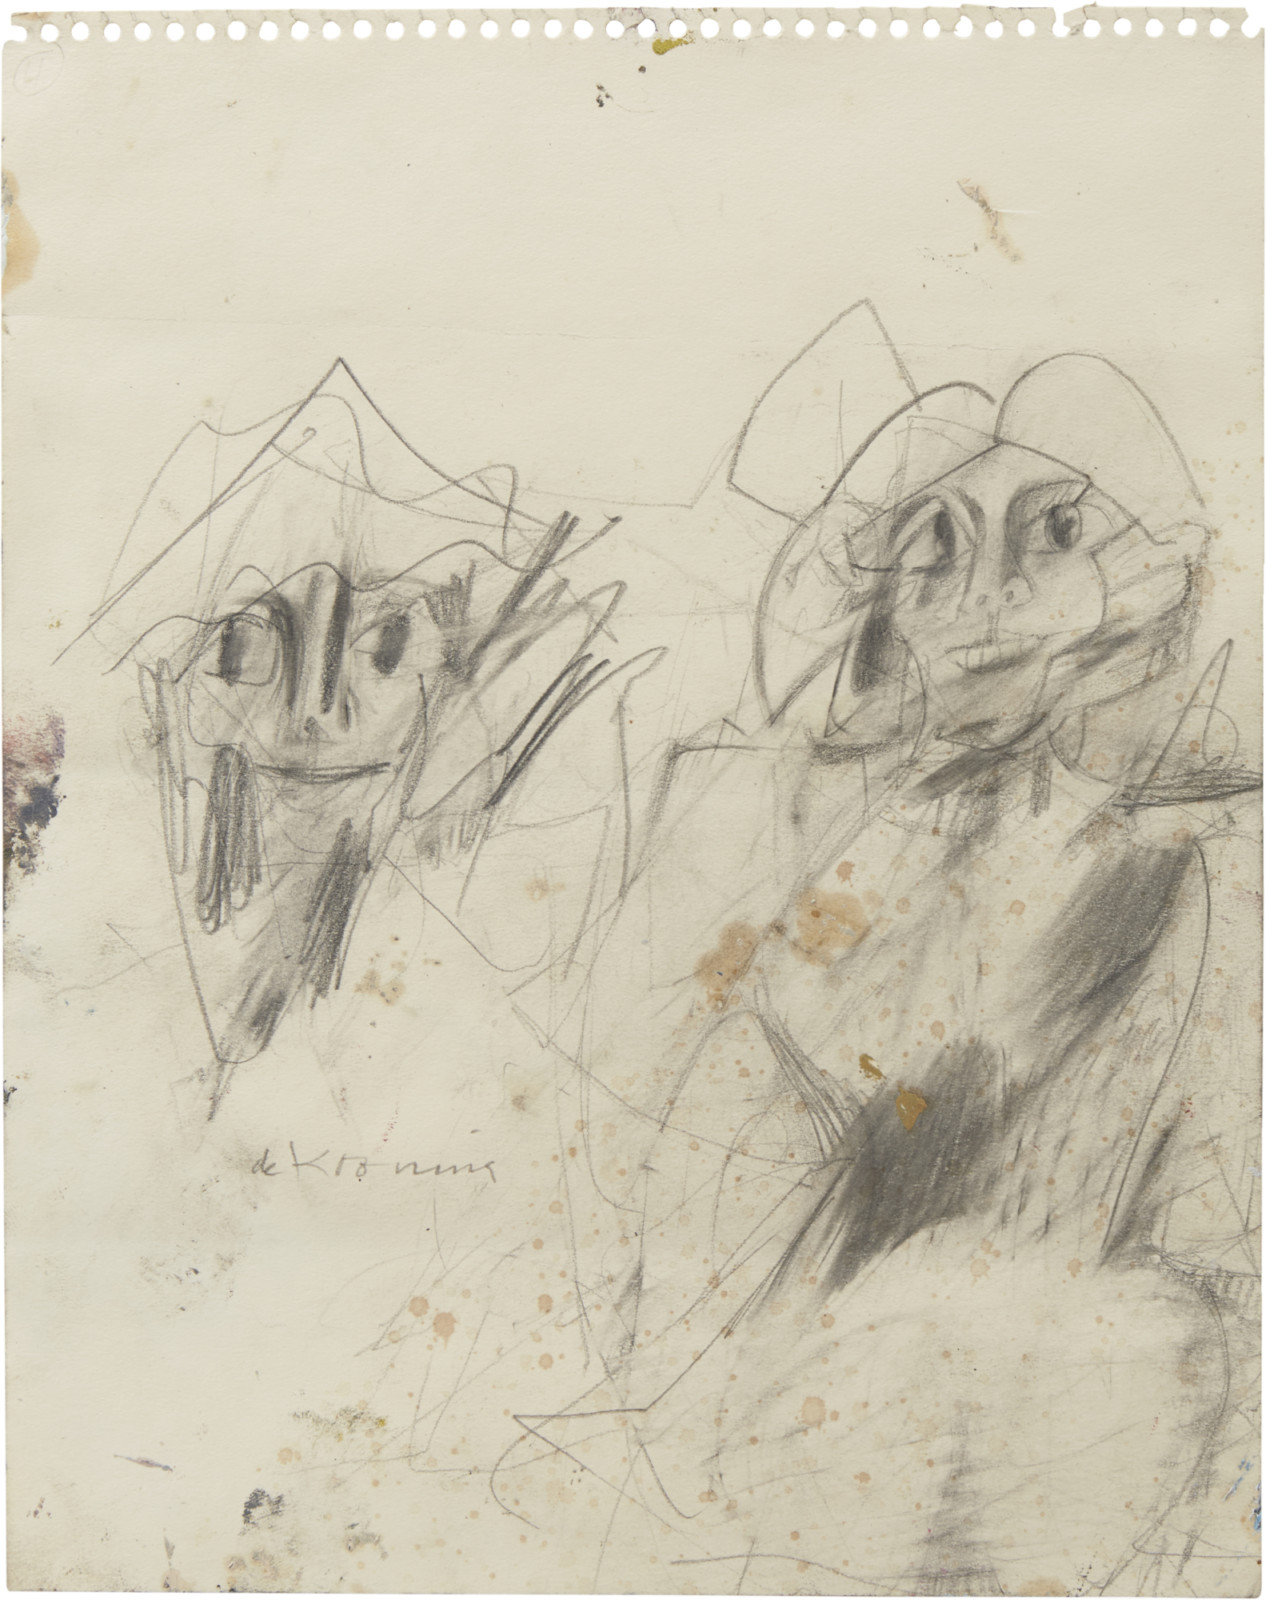 Drawing, dated c. 1950